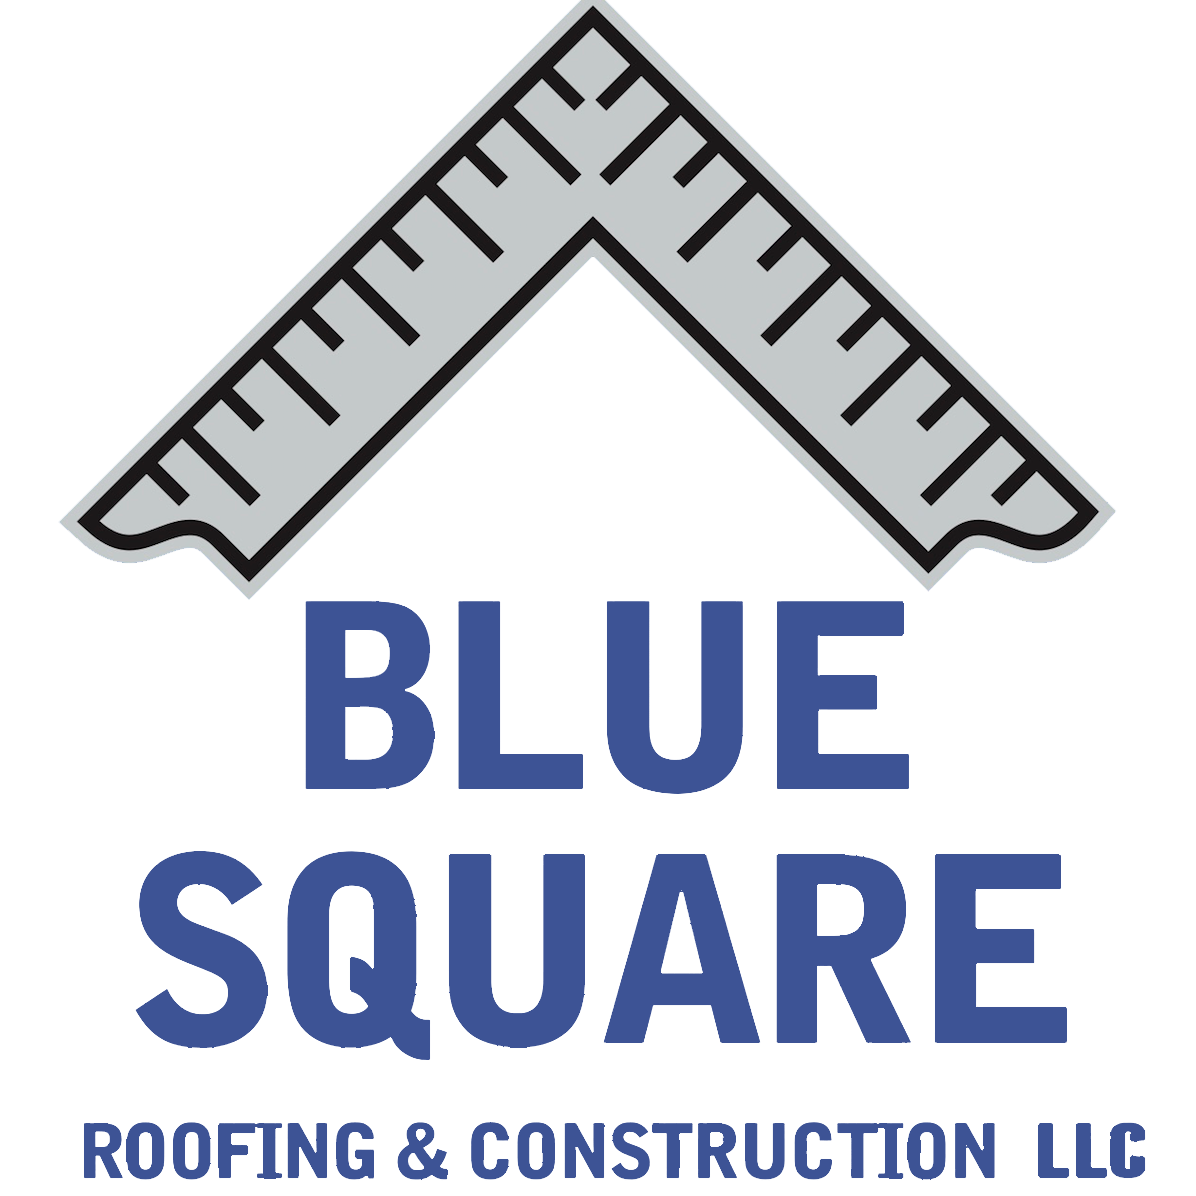 Blue Square Roofing